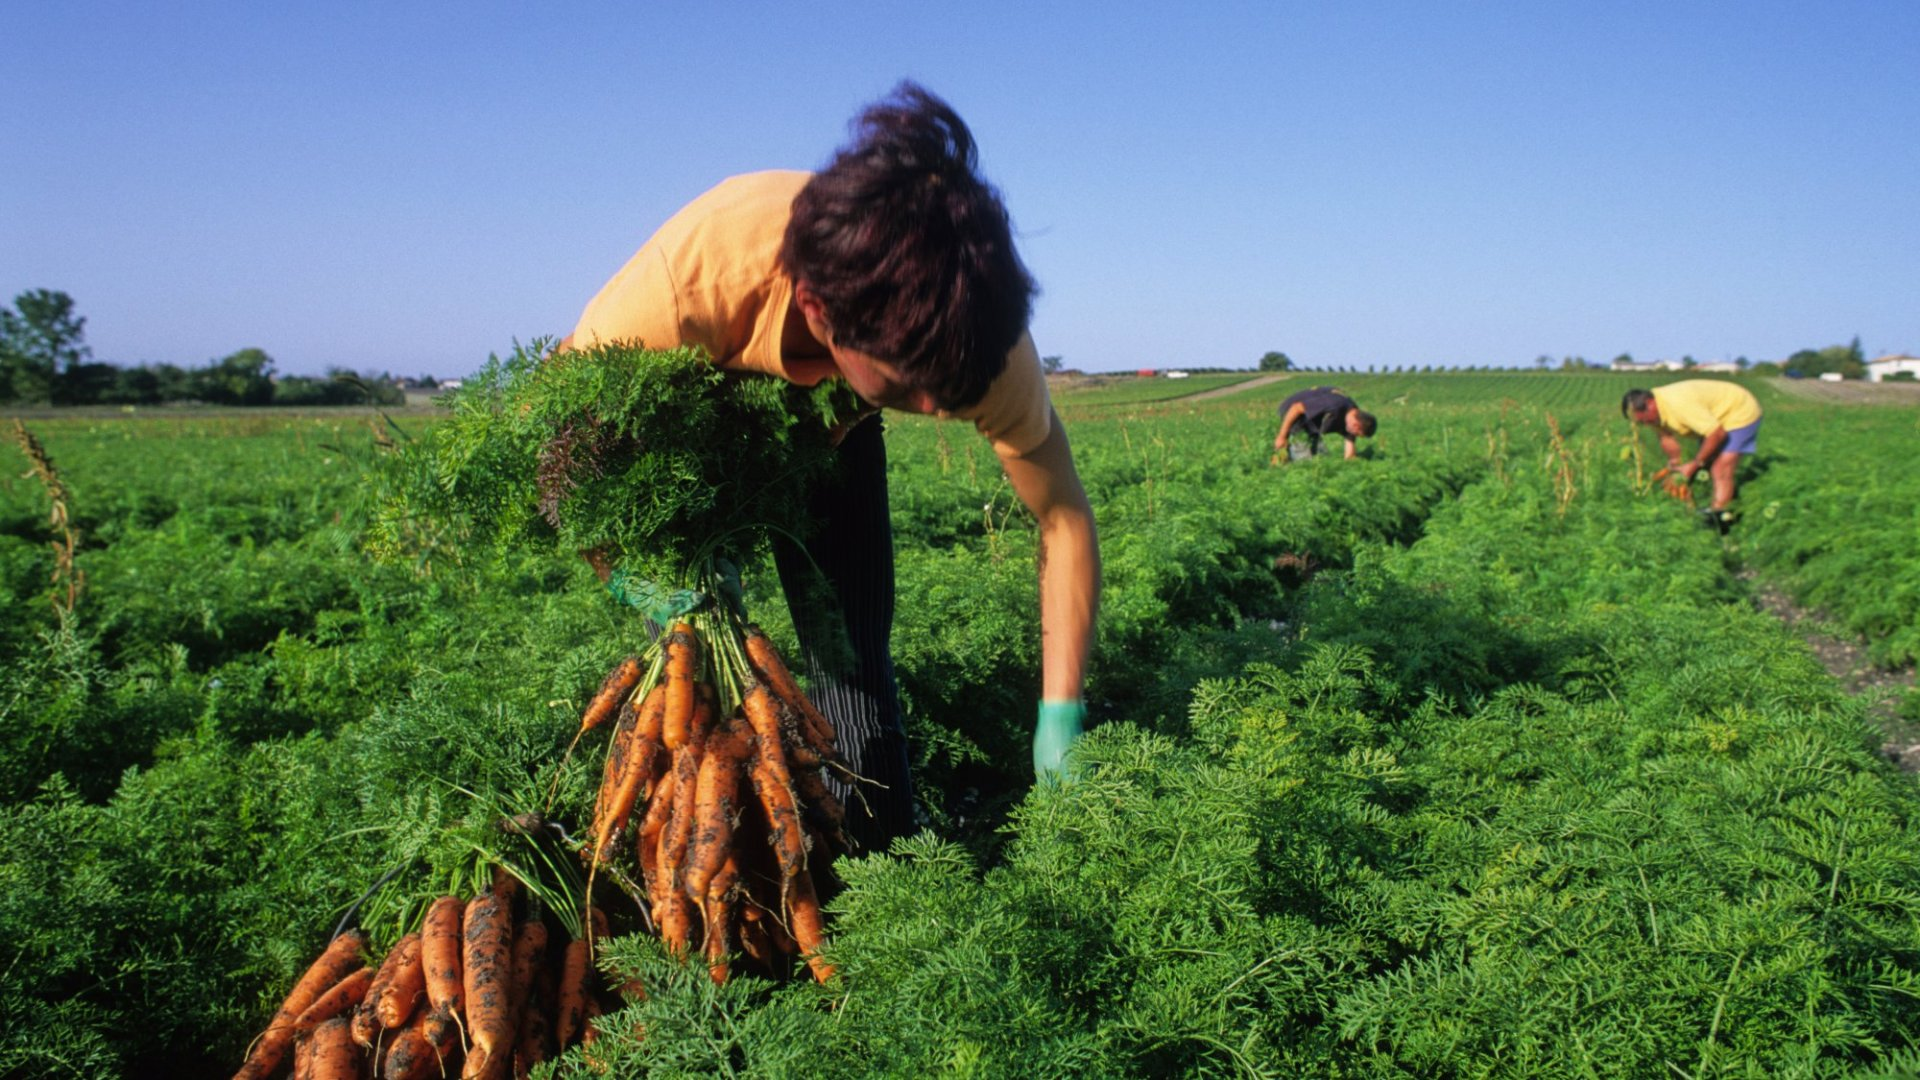 The Role of Immigrants in Our Food System